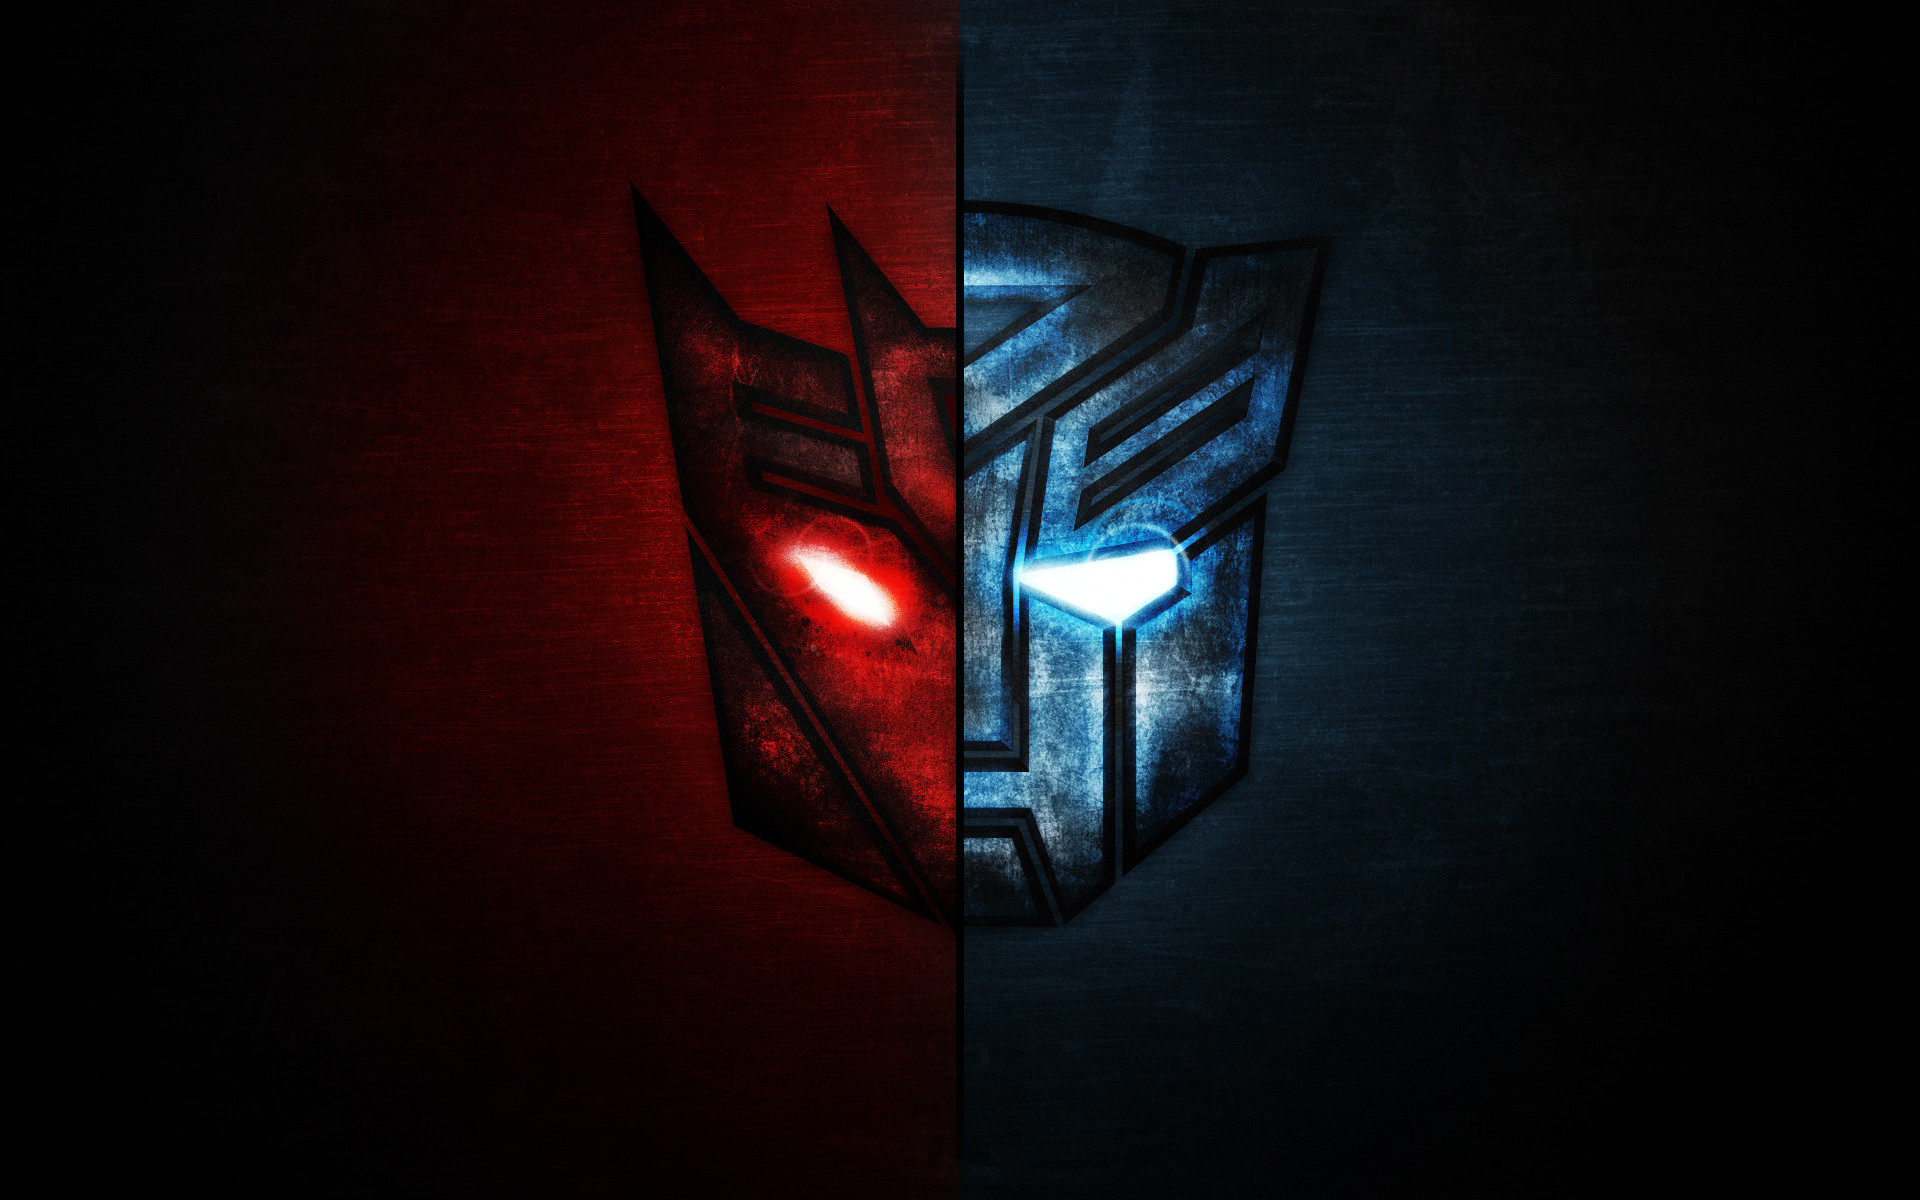 transformers 5 hd movie download